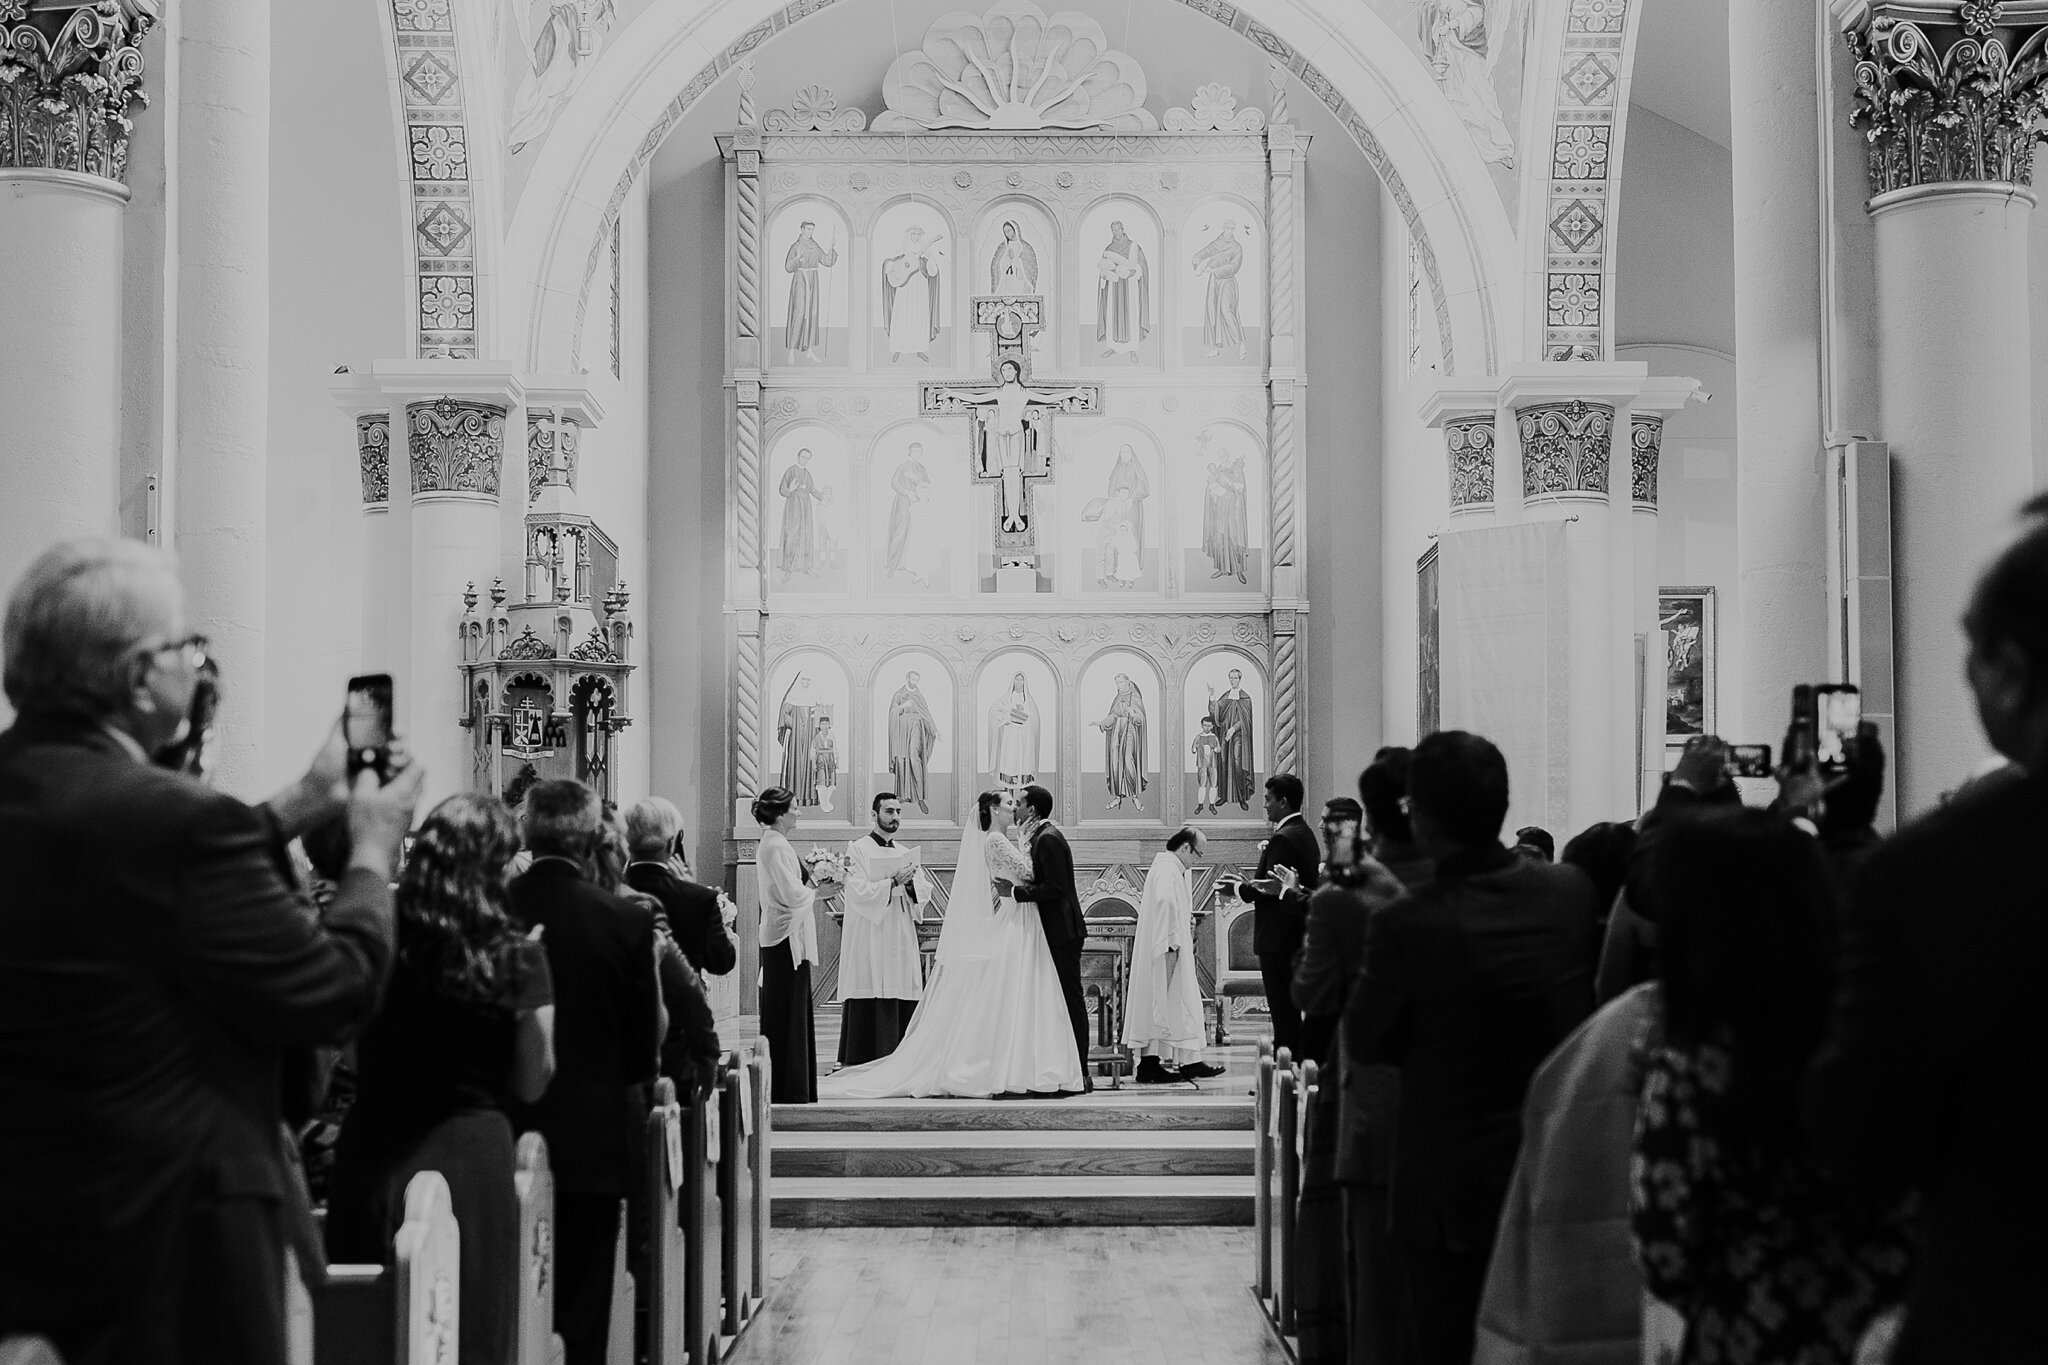 Alicia+lucia+photography+-+albuquerque+wedding+photographer+-+santa+fe+wedding+photography+-+new+mexico+wedding+photographer+-+new+mexico+wedding+-+hindu+wedding+-+catholic+wedding+-+multicultural+wedding+-+santa+fe+wedding_0035.jpg